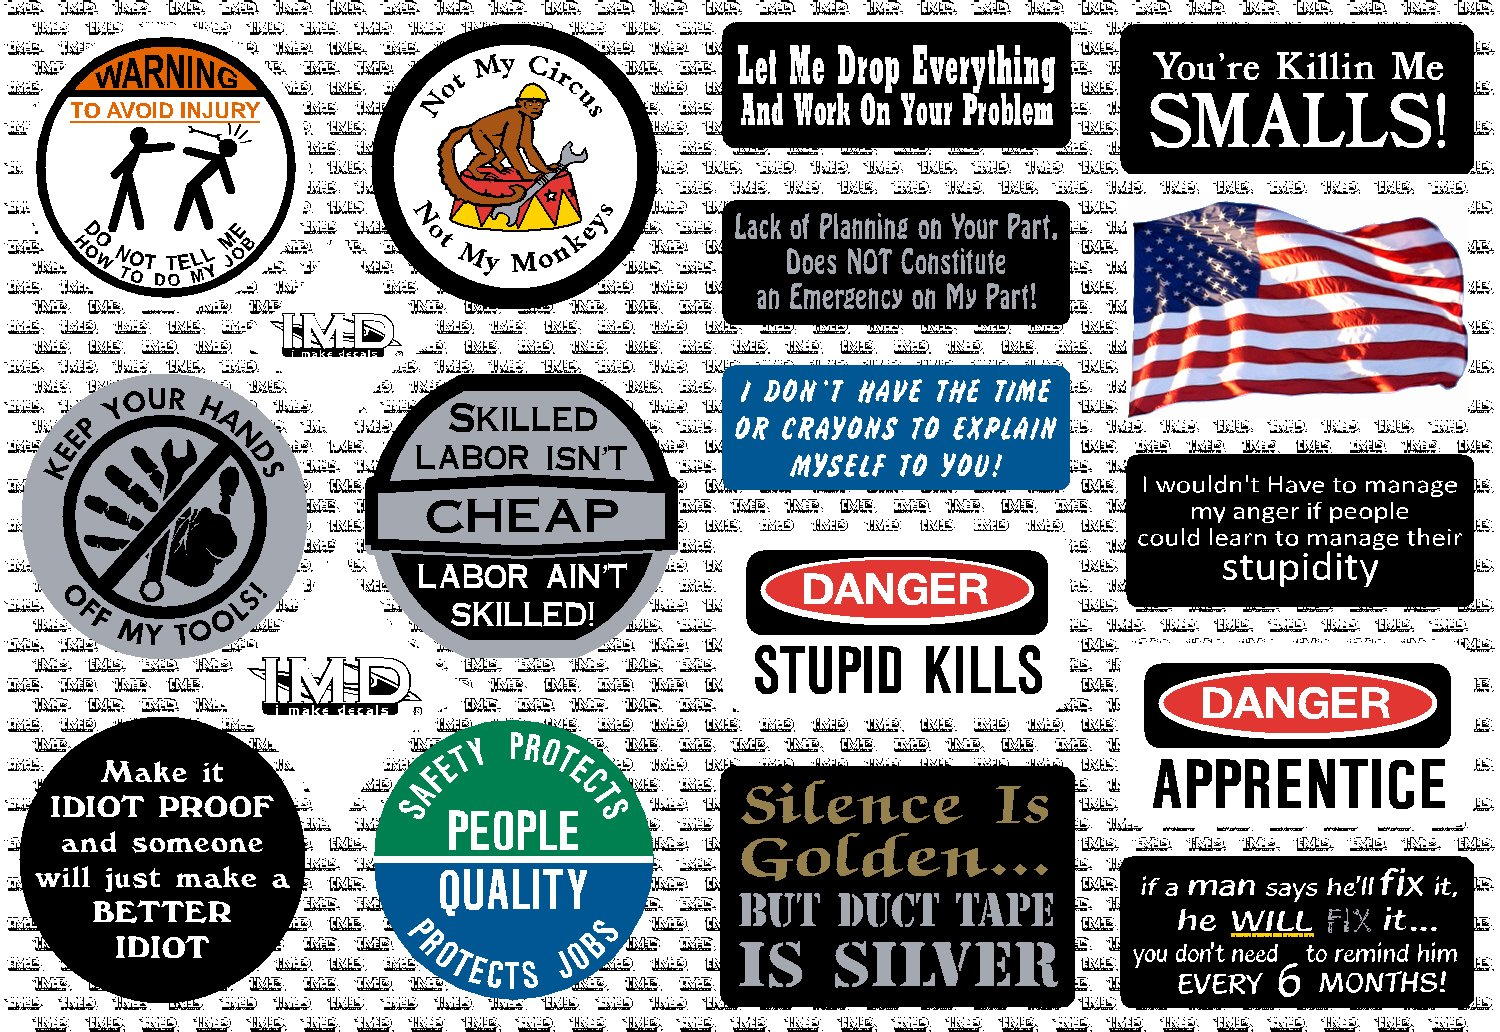 16-Pack, I Make Decals, Hard Hat, Lunch Box, Tool Box Stickers | Proudly MADE IN USA! Funny vinyl decals for Construction, Electrician, Union, Oilfield, Plumber, Mechanics | by I Make Decals (Image #2)